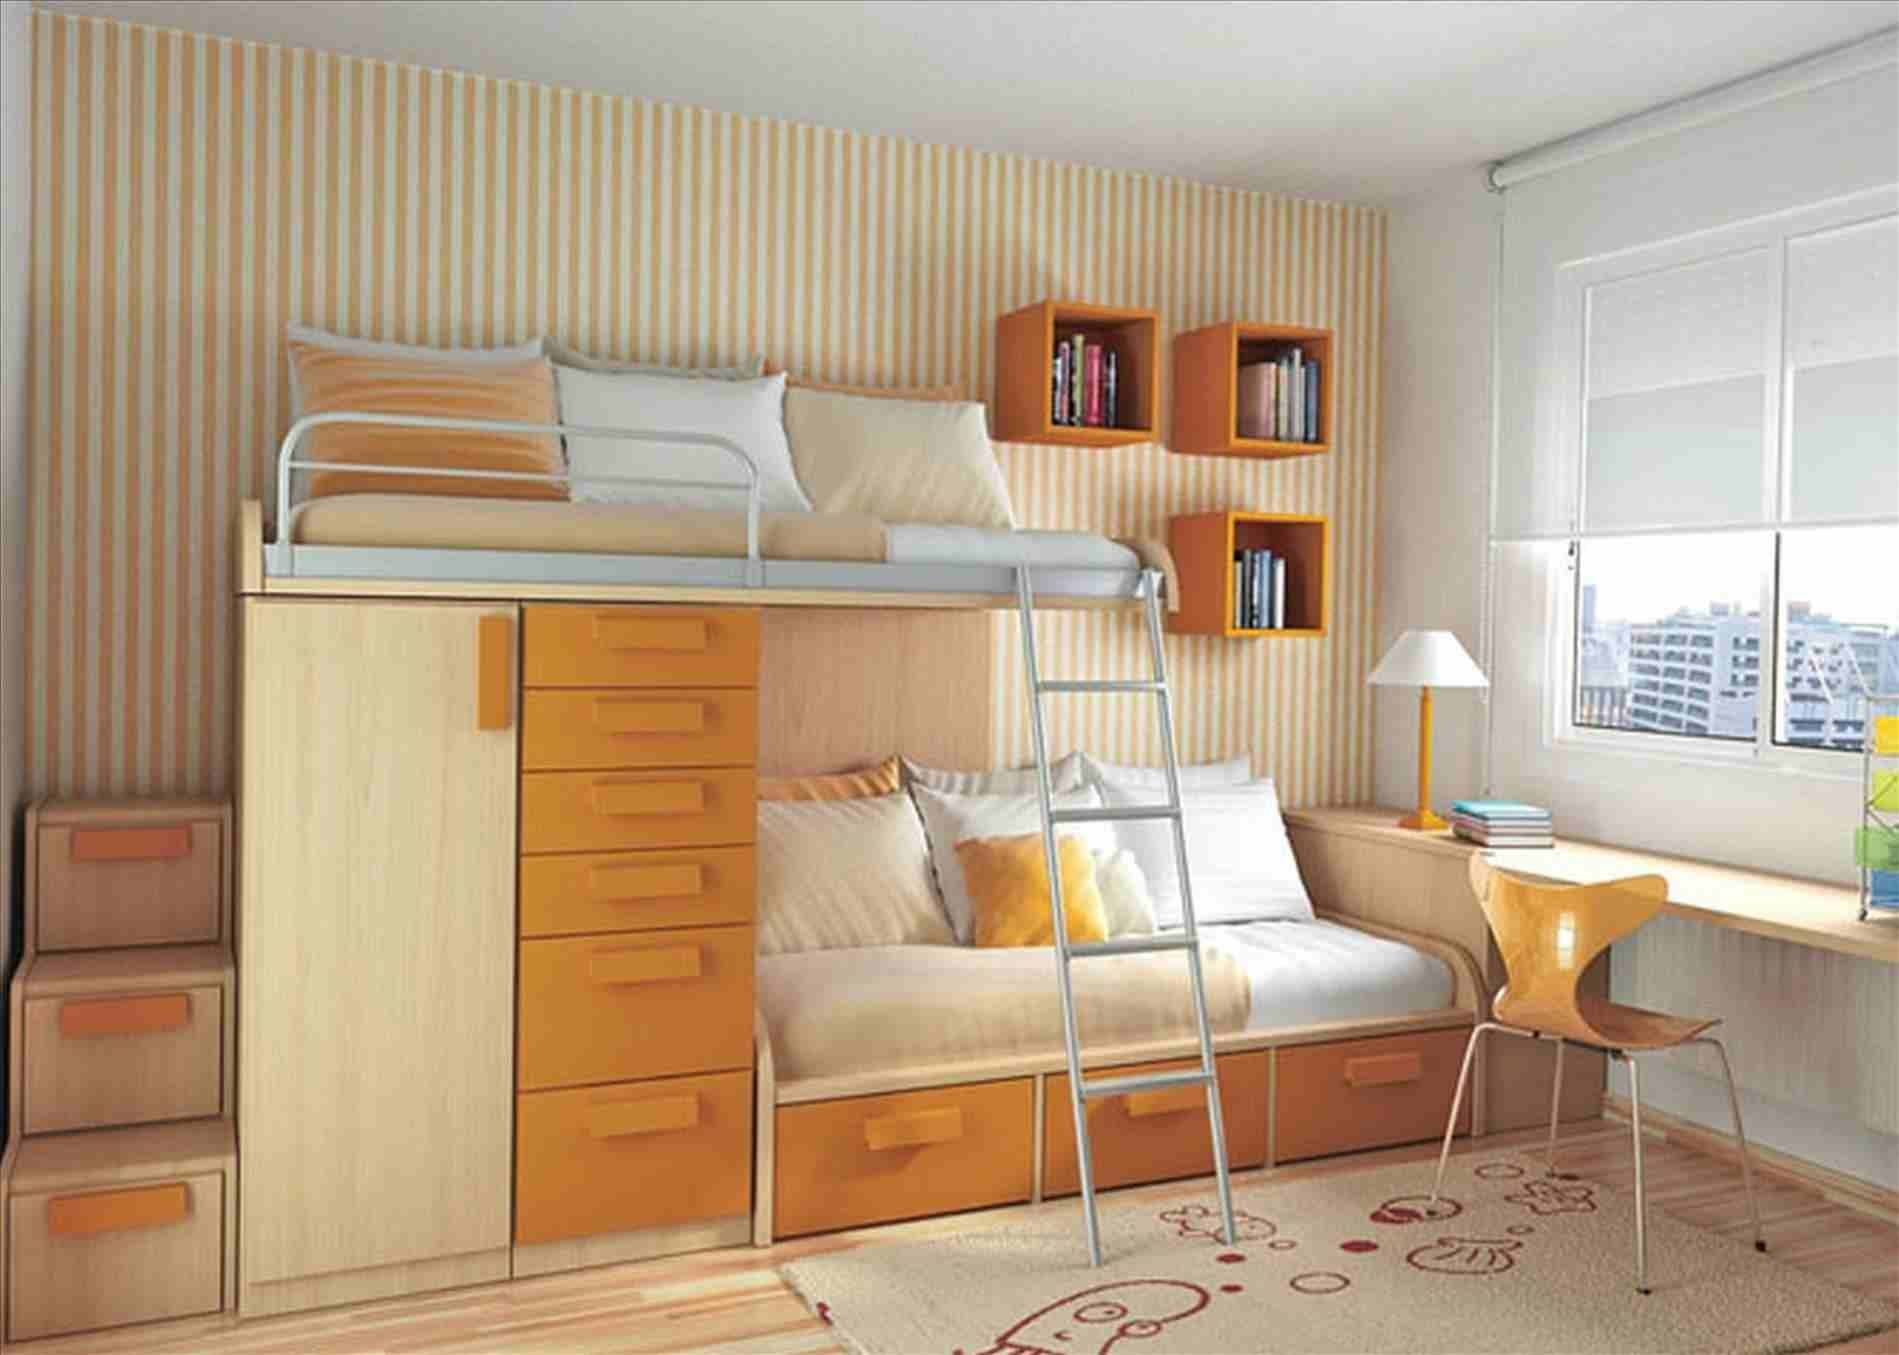 390 Top Bedroom Ideas Bedroom Design Bedroom Decor Bedroom Interior